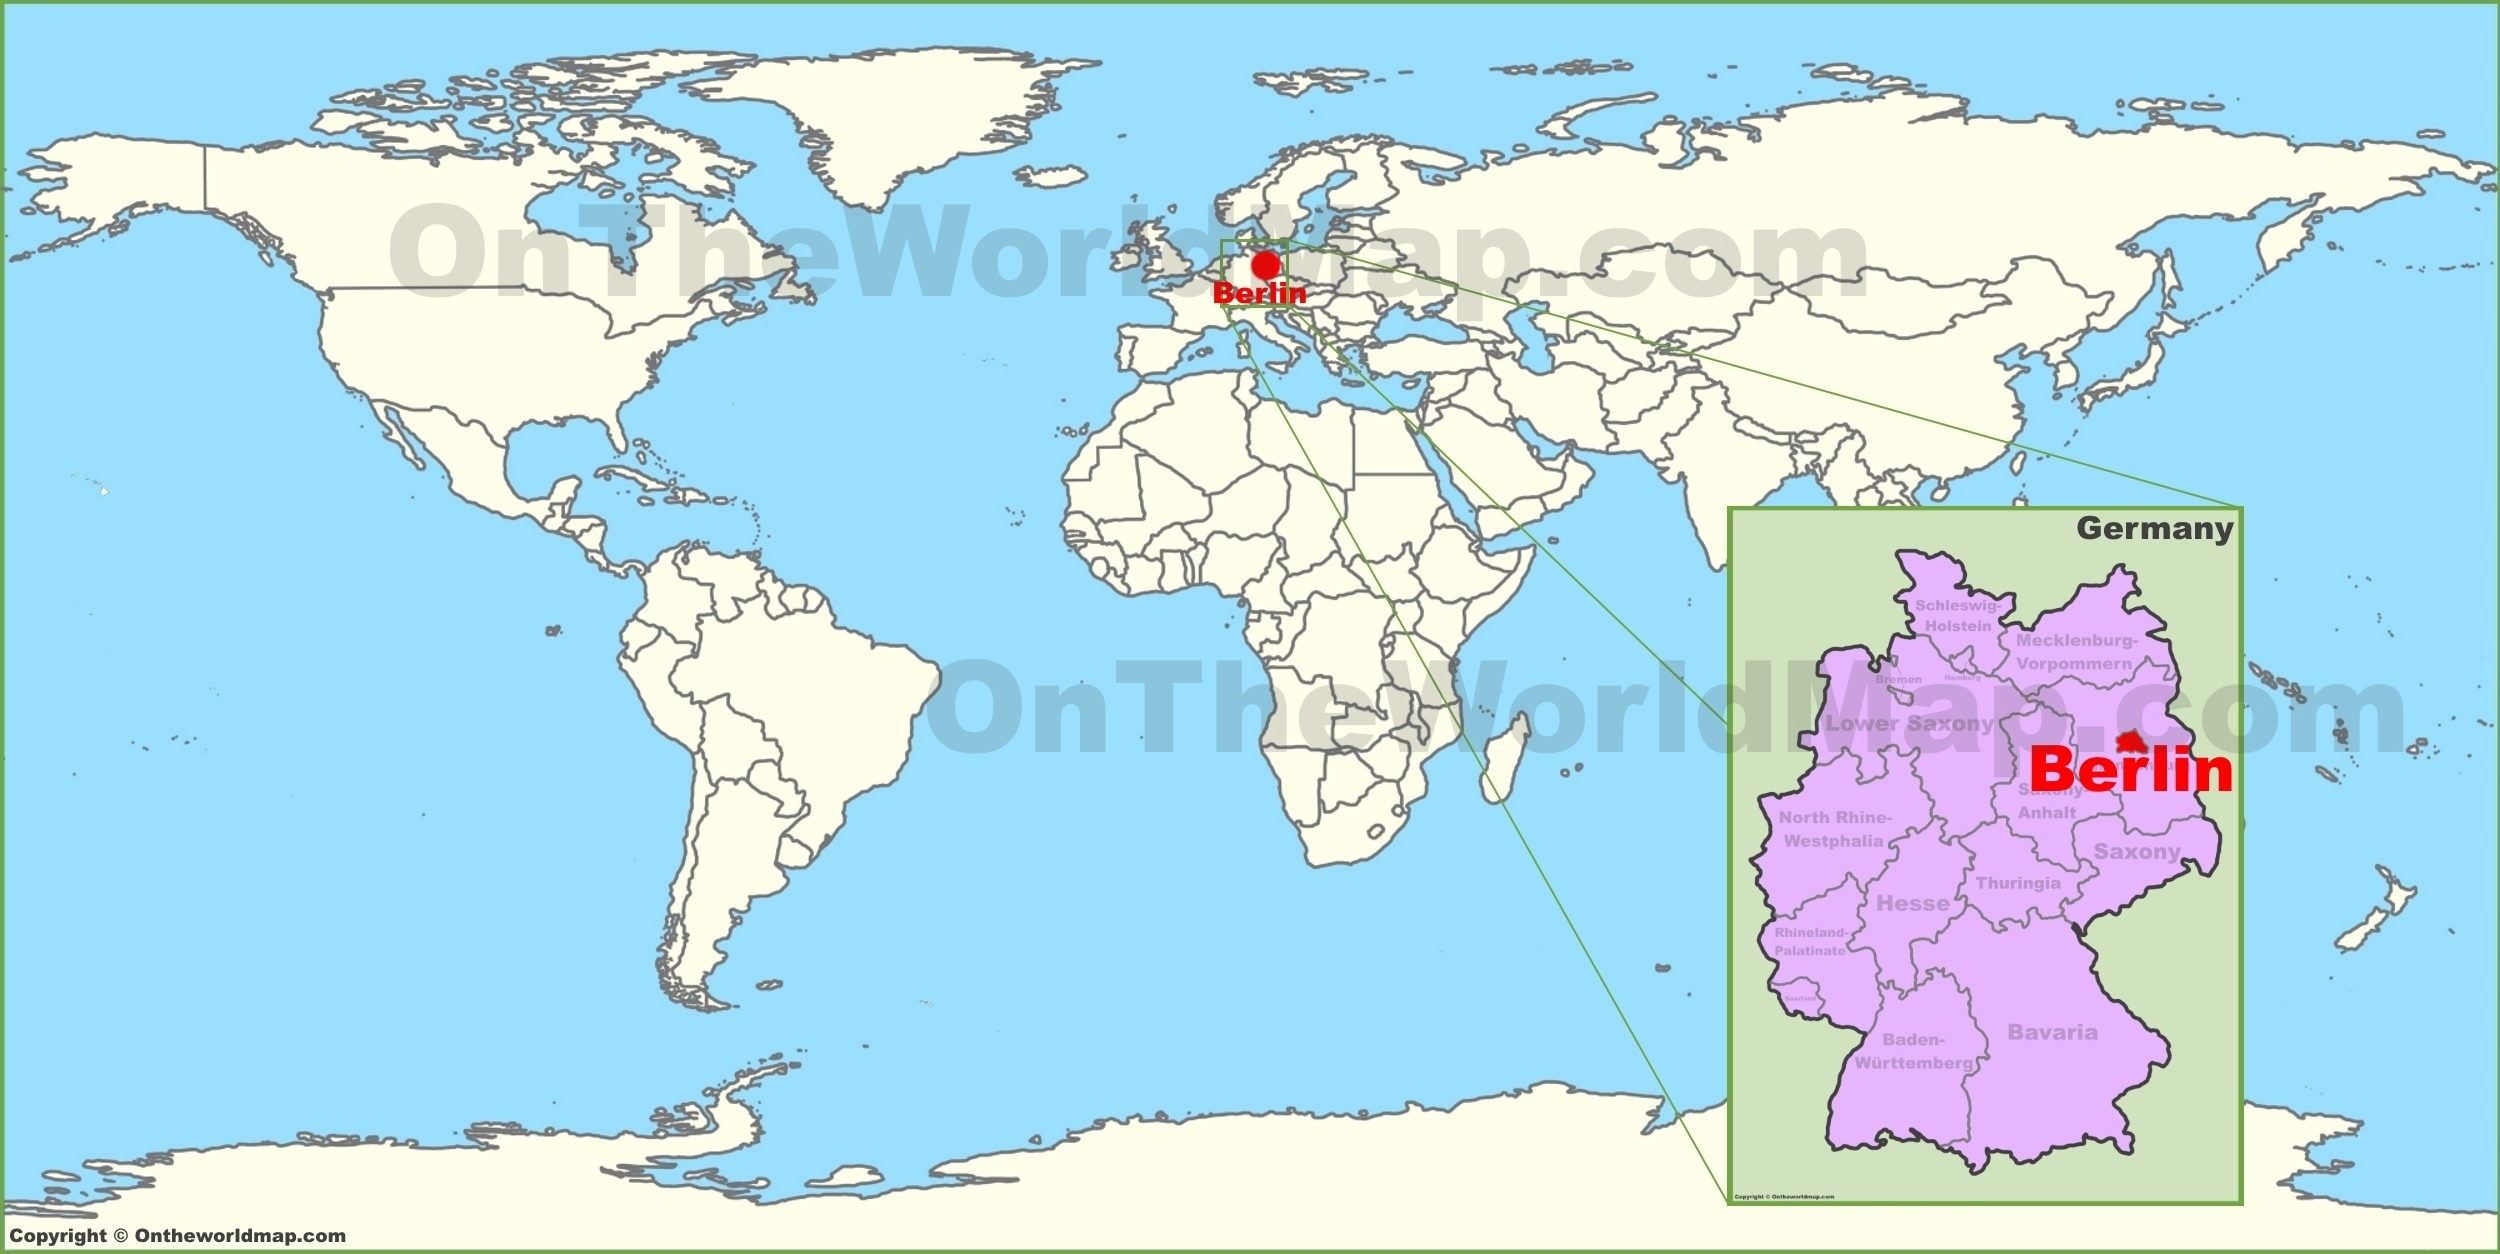 Berlin On The World Map with regard to Map Of The World With Germany